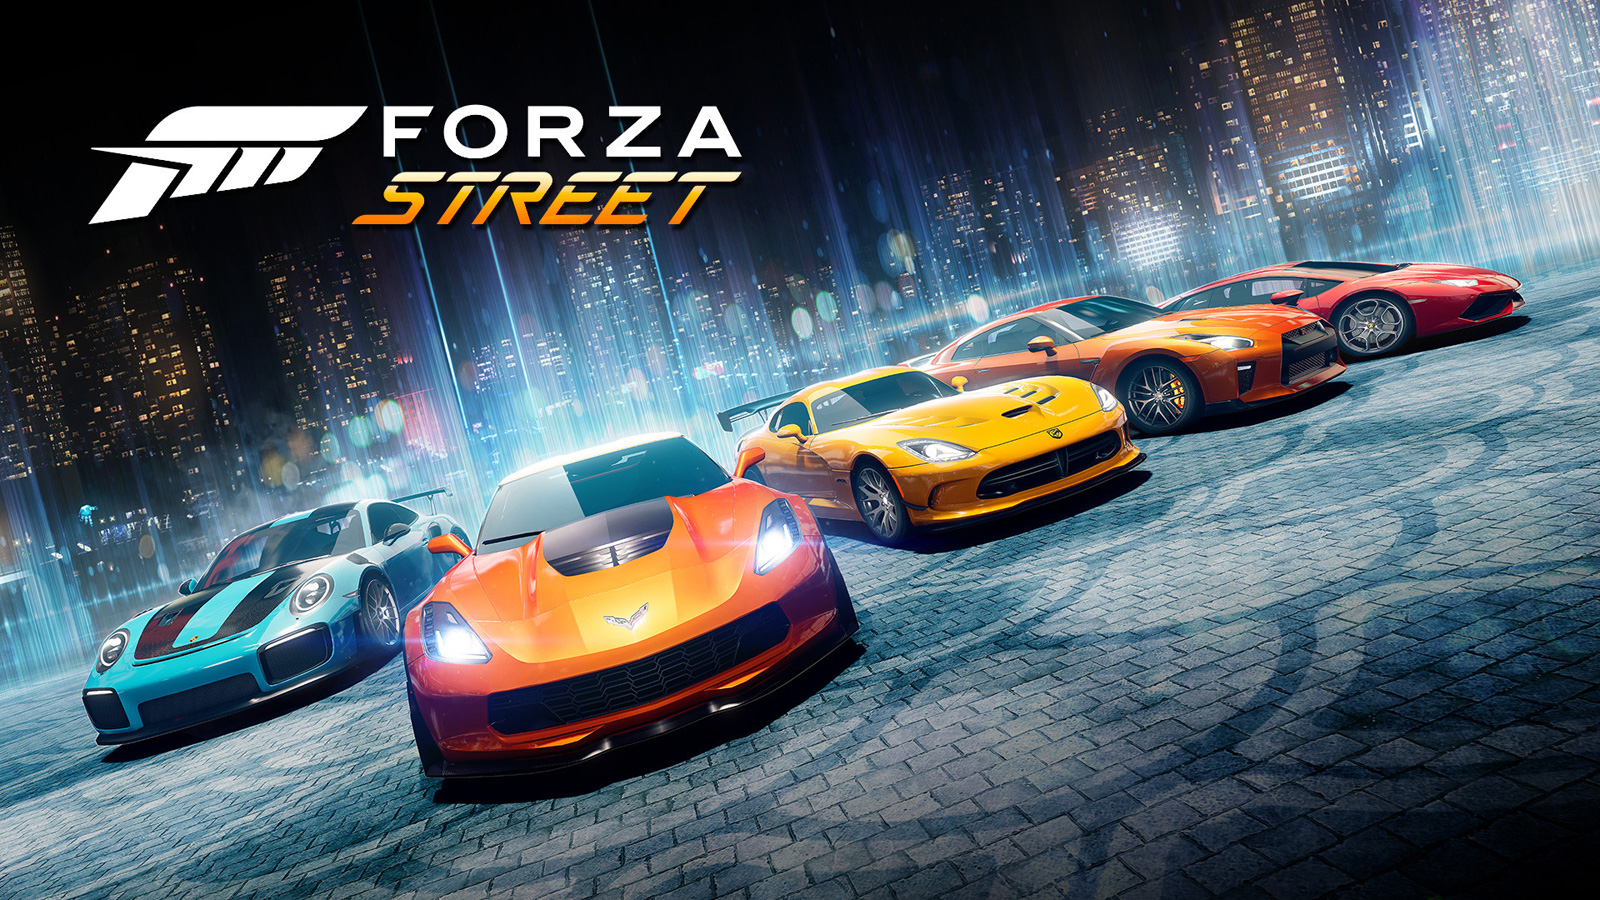 'Forza Street' reaches Android and iOS on May 5th